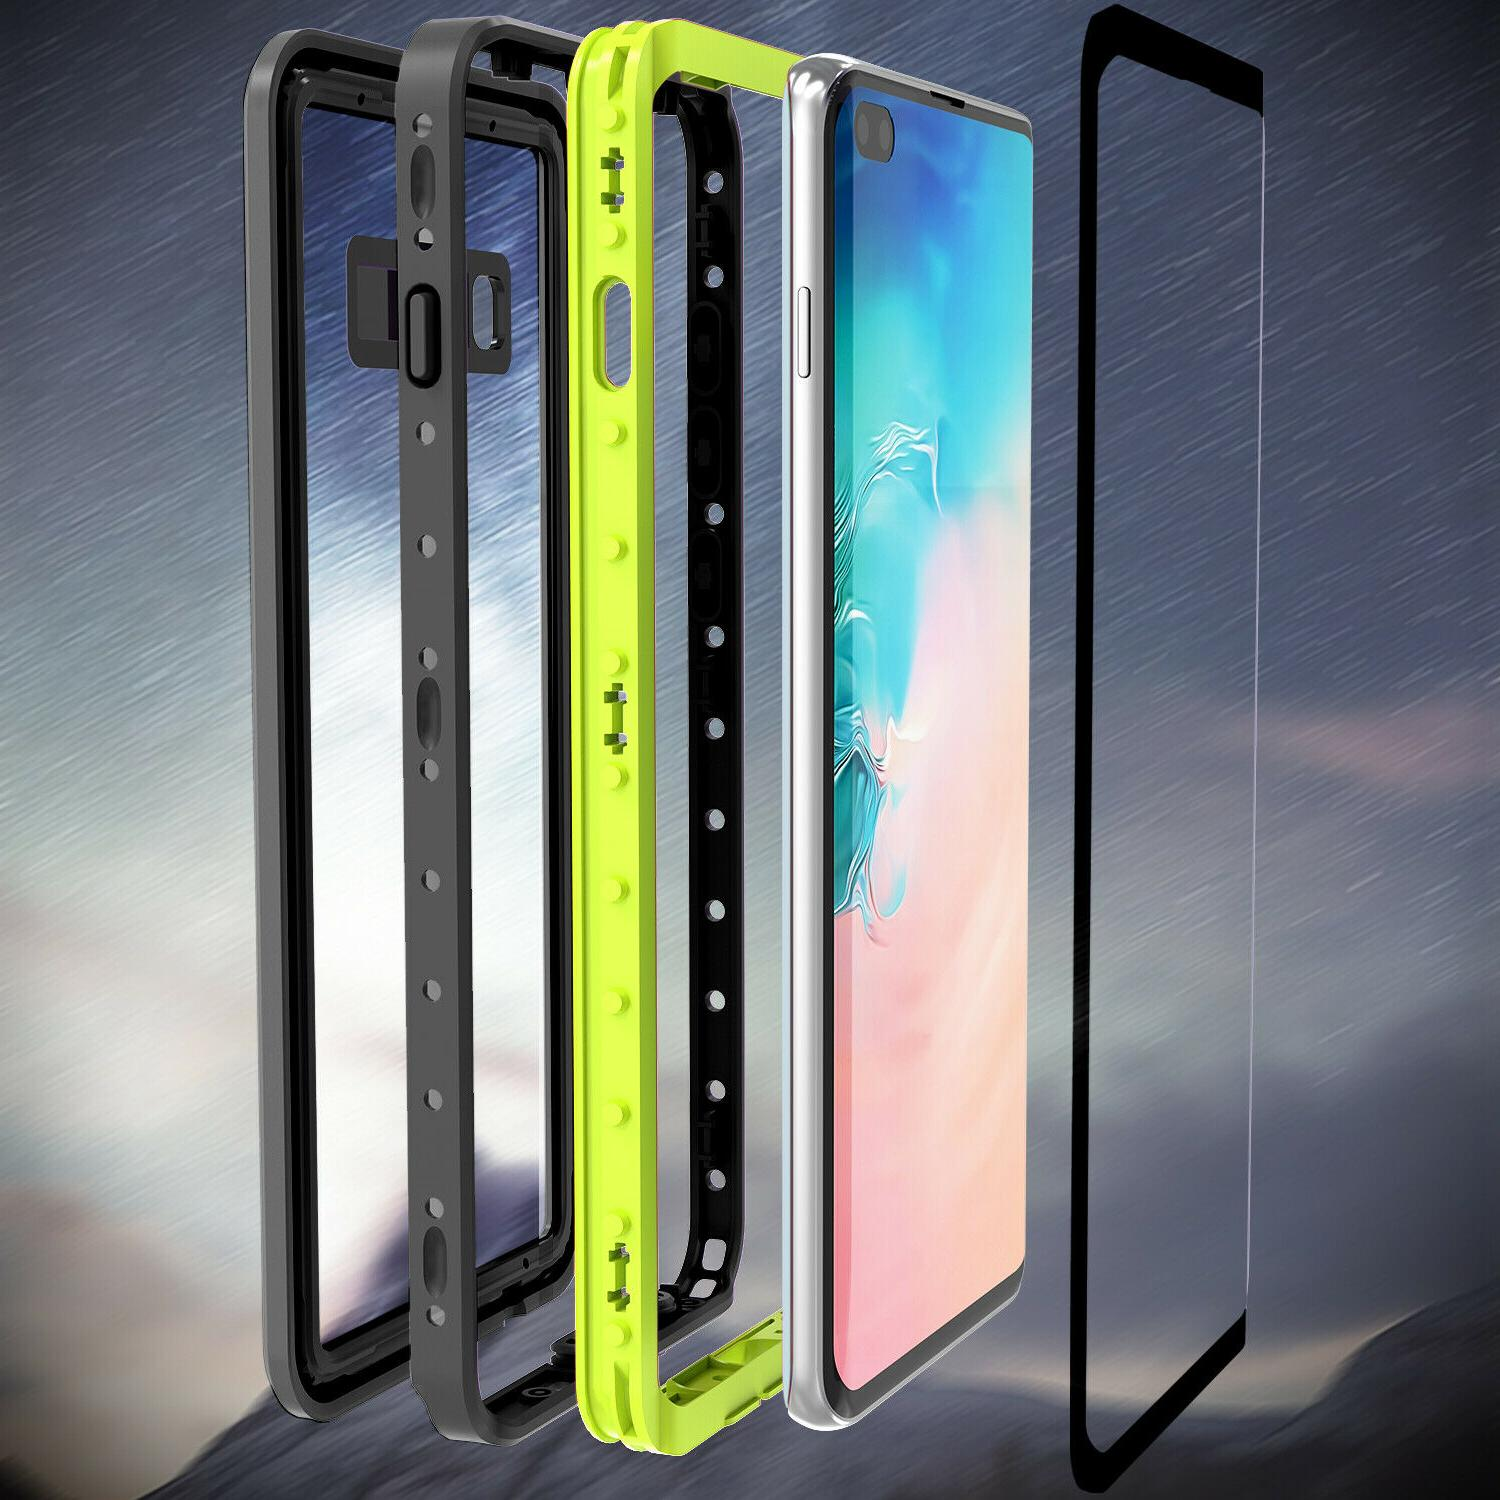 For Samsung Galaxy S10 Plus Waterproof Built-in